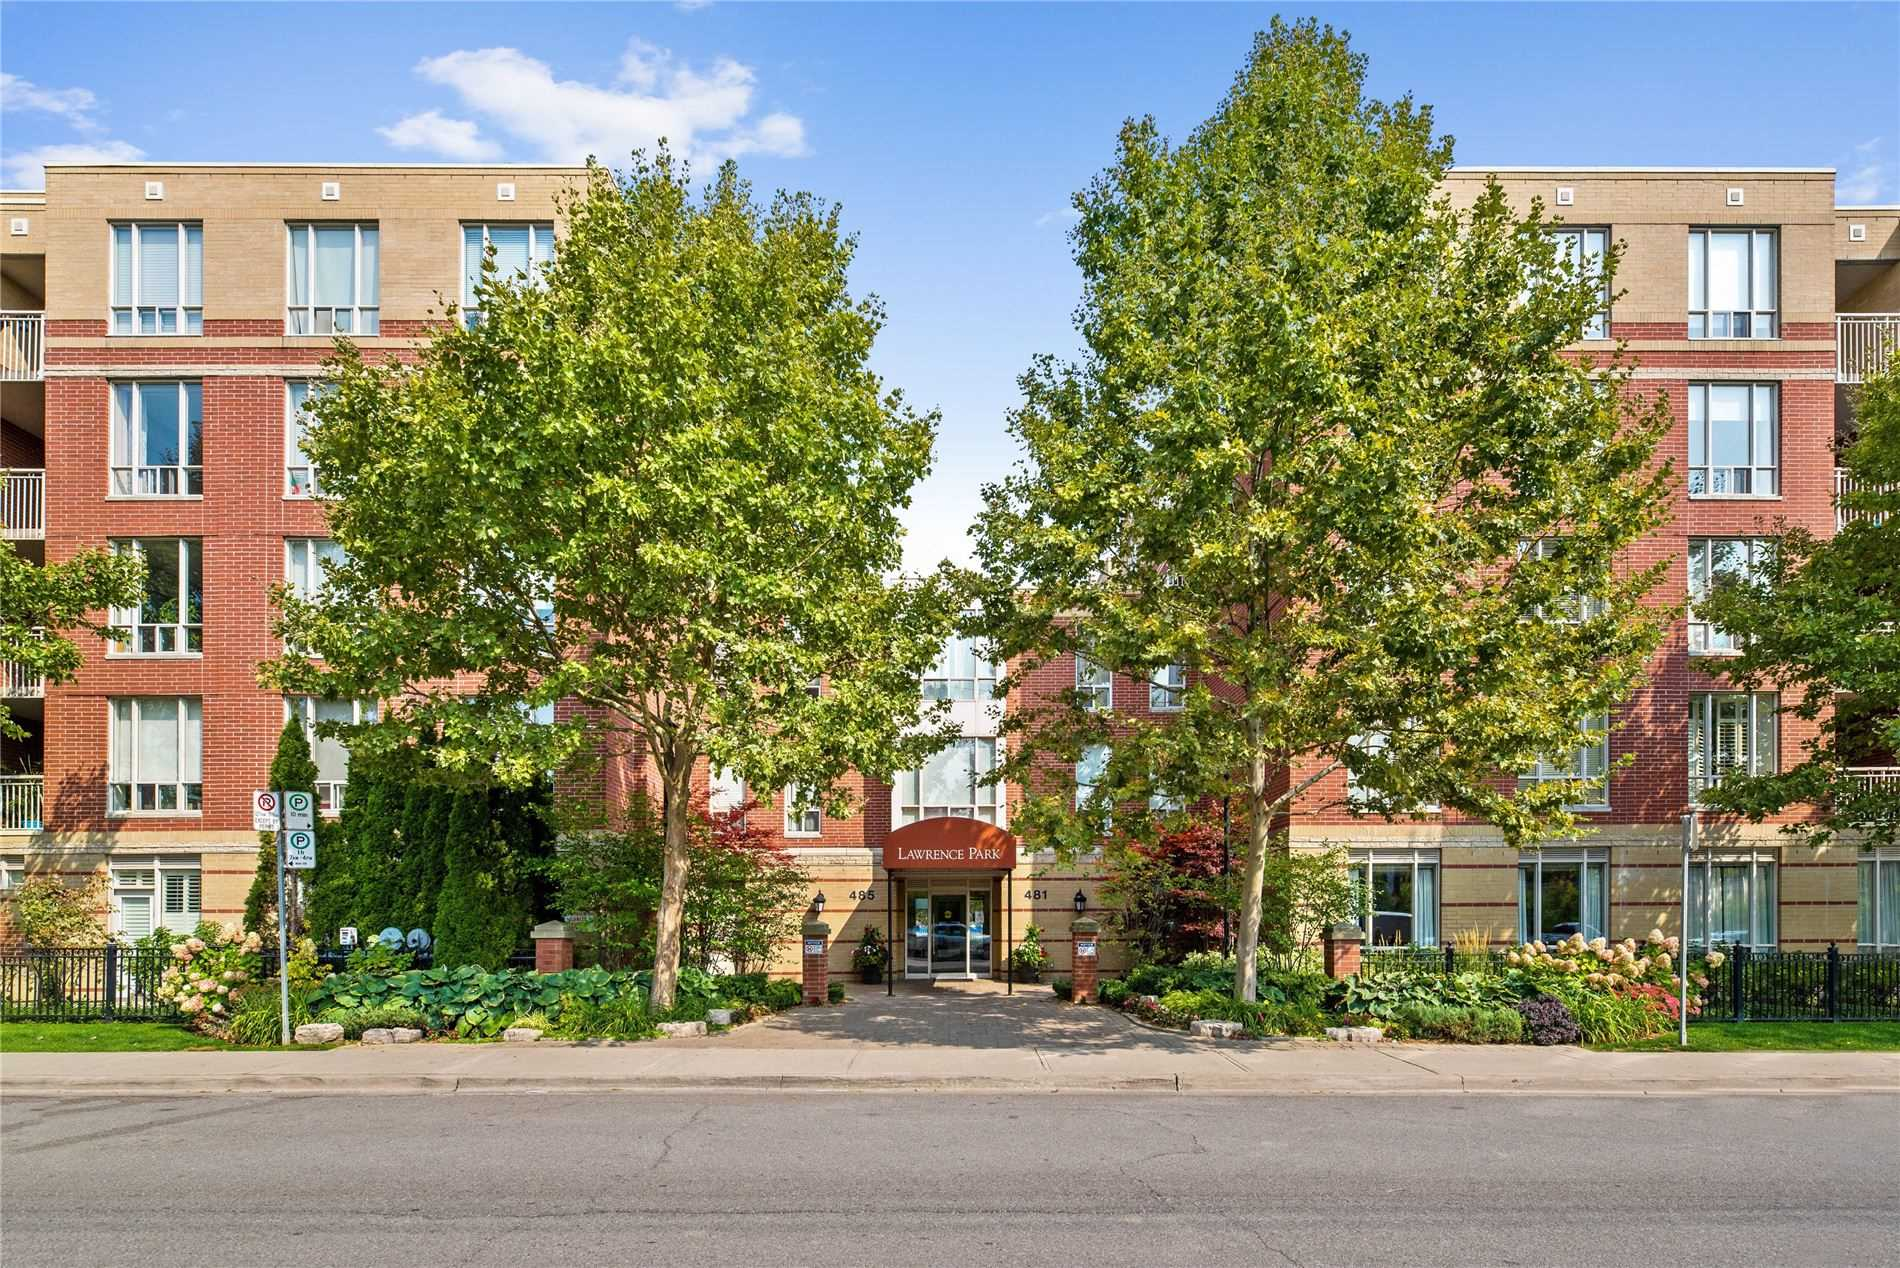 485 Rosewell Ave, Toronto, Ontario M4R 2J2, 2 Bedrooms Bedrooms, 7 Rooms Rooms,2 BathroomsBathrooms,Condo Apt,For Sale,Rosewell,C4949255